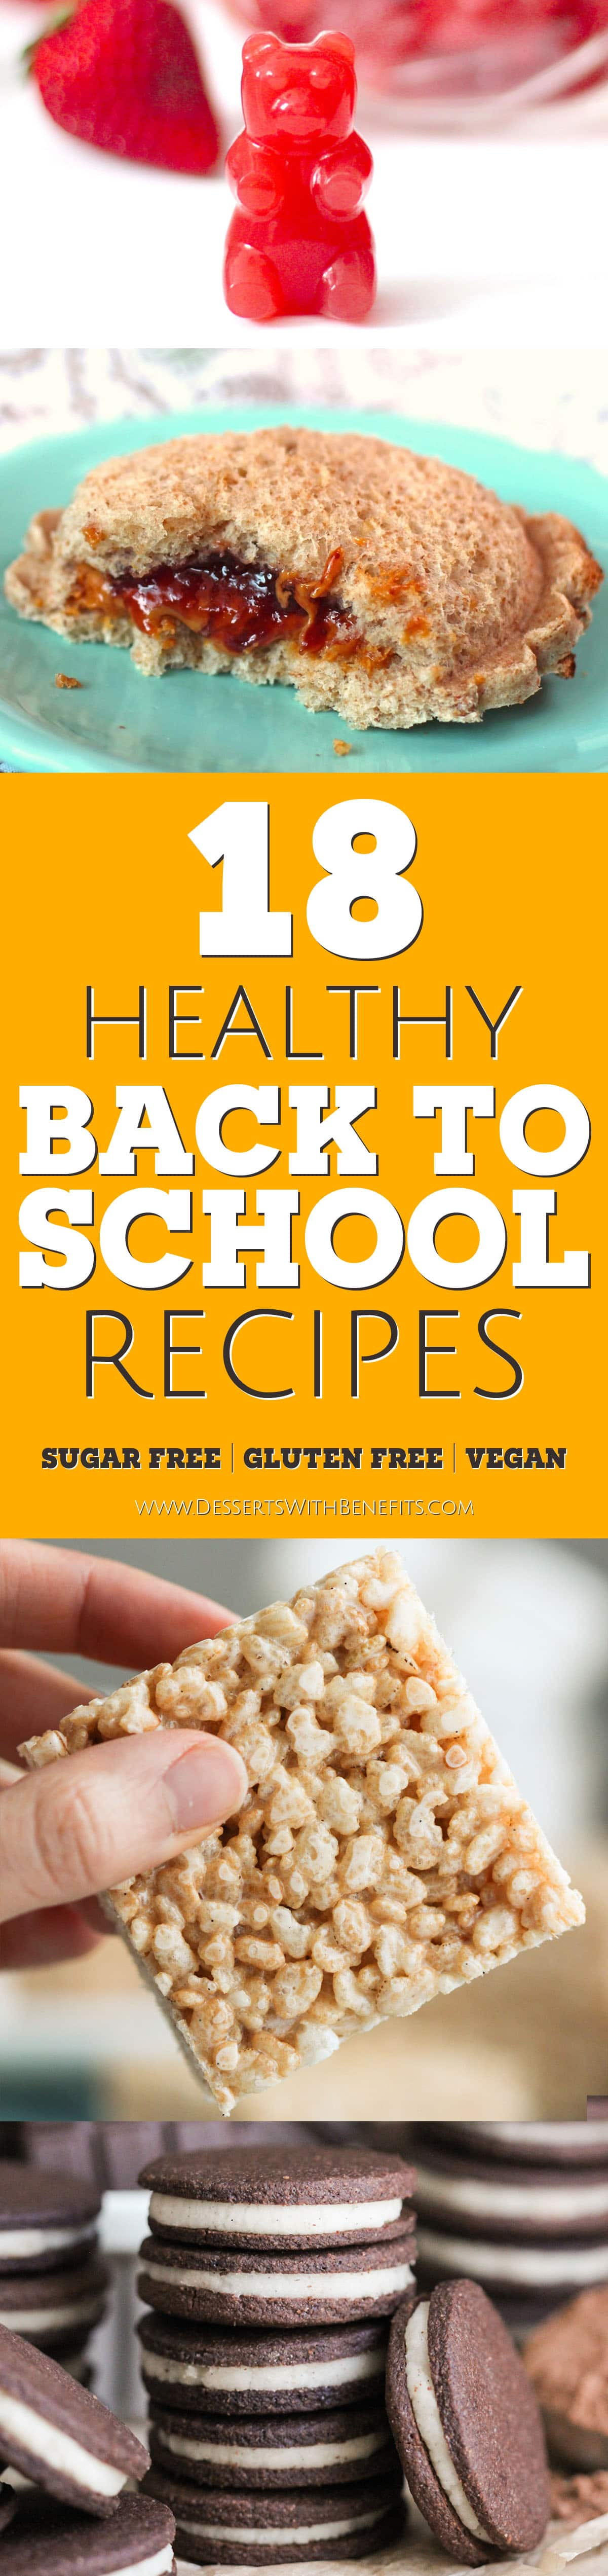 18 Healthy Back To School Recipes Roundup